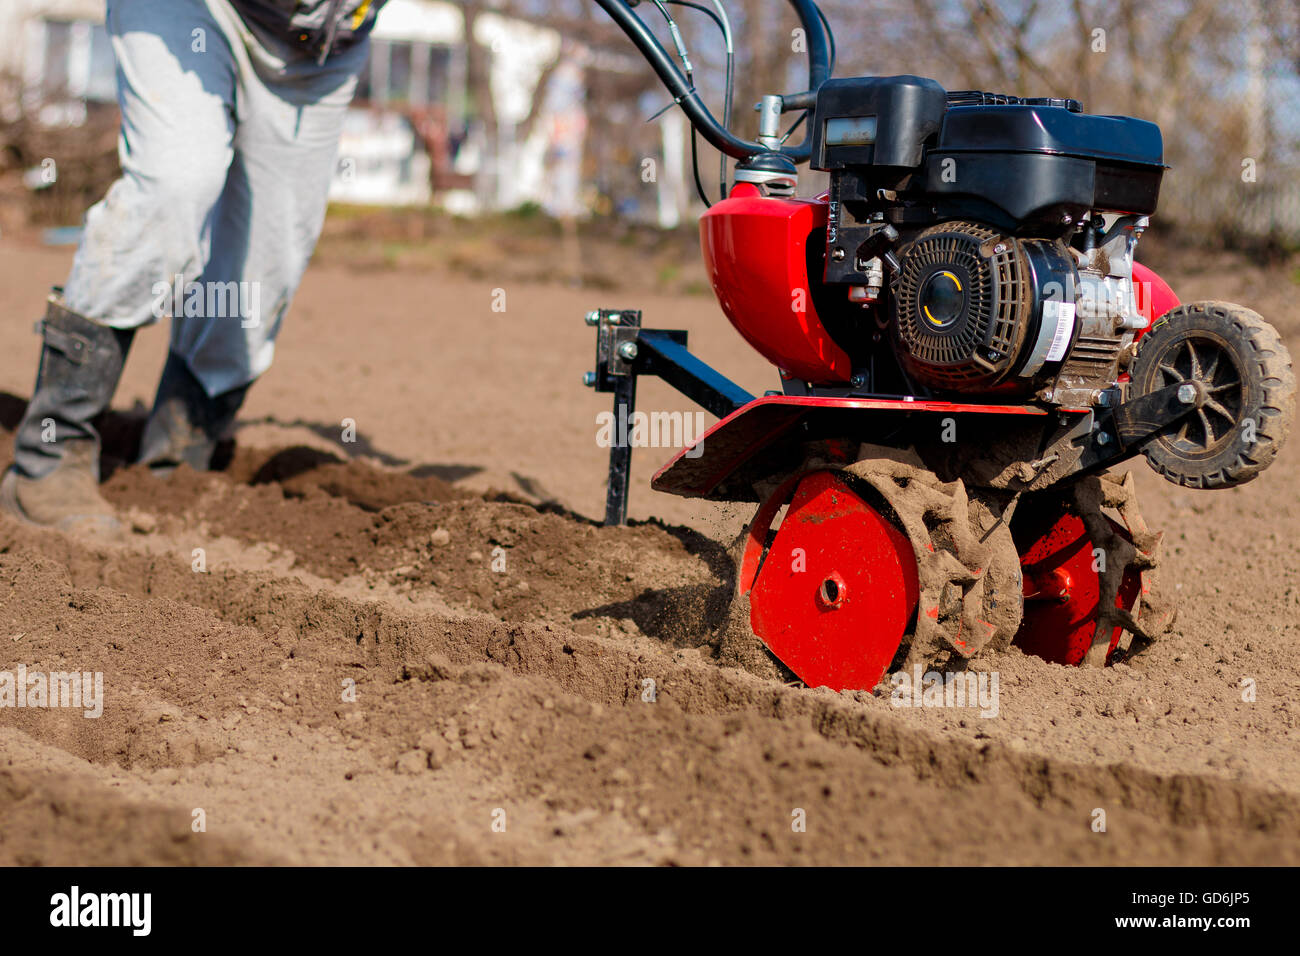 Tiller Old Stock Photos & Tiller Old Stock Images - Alamy